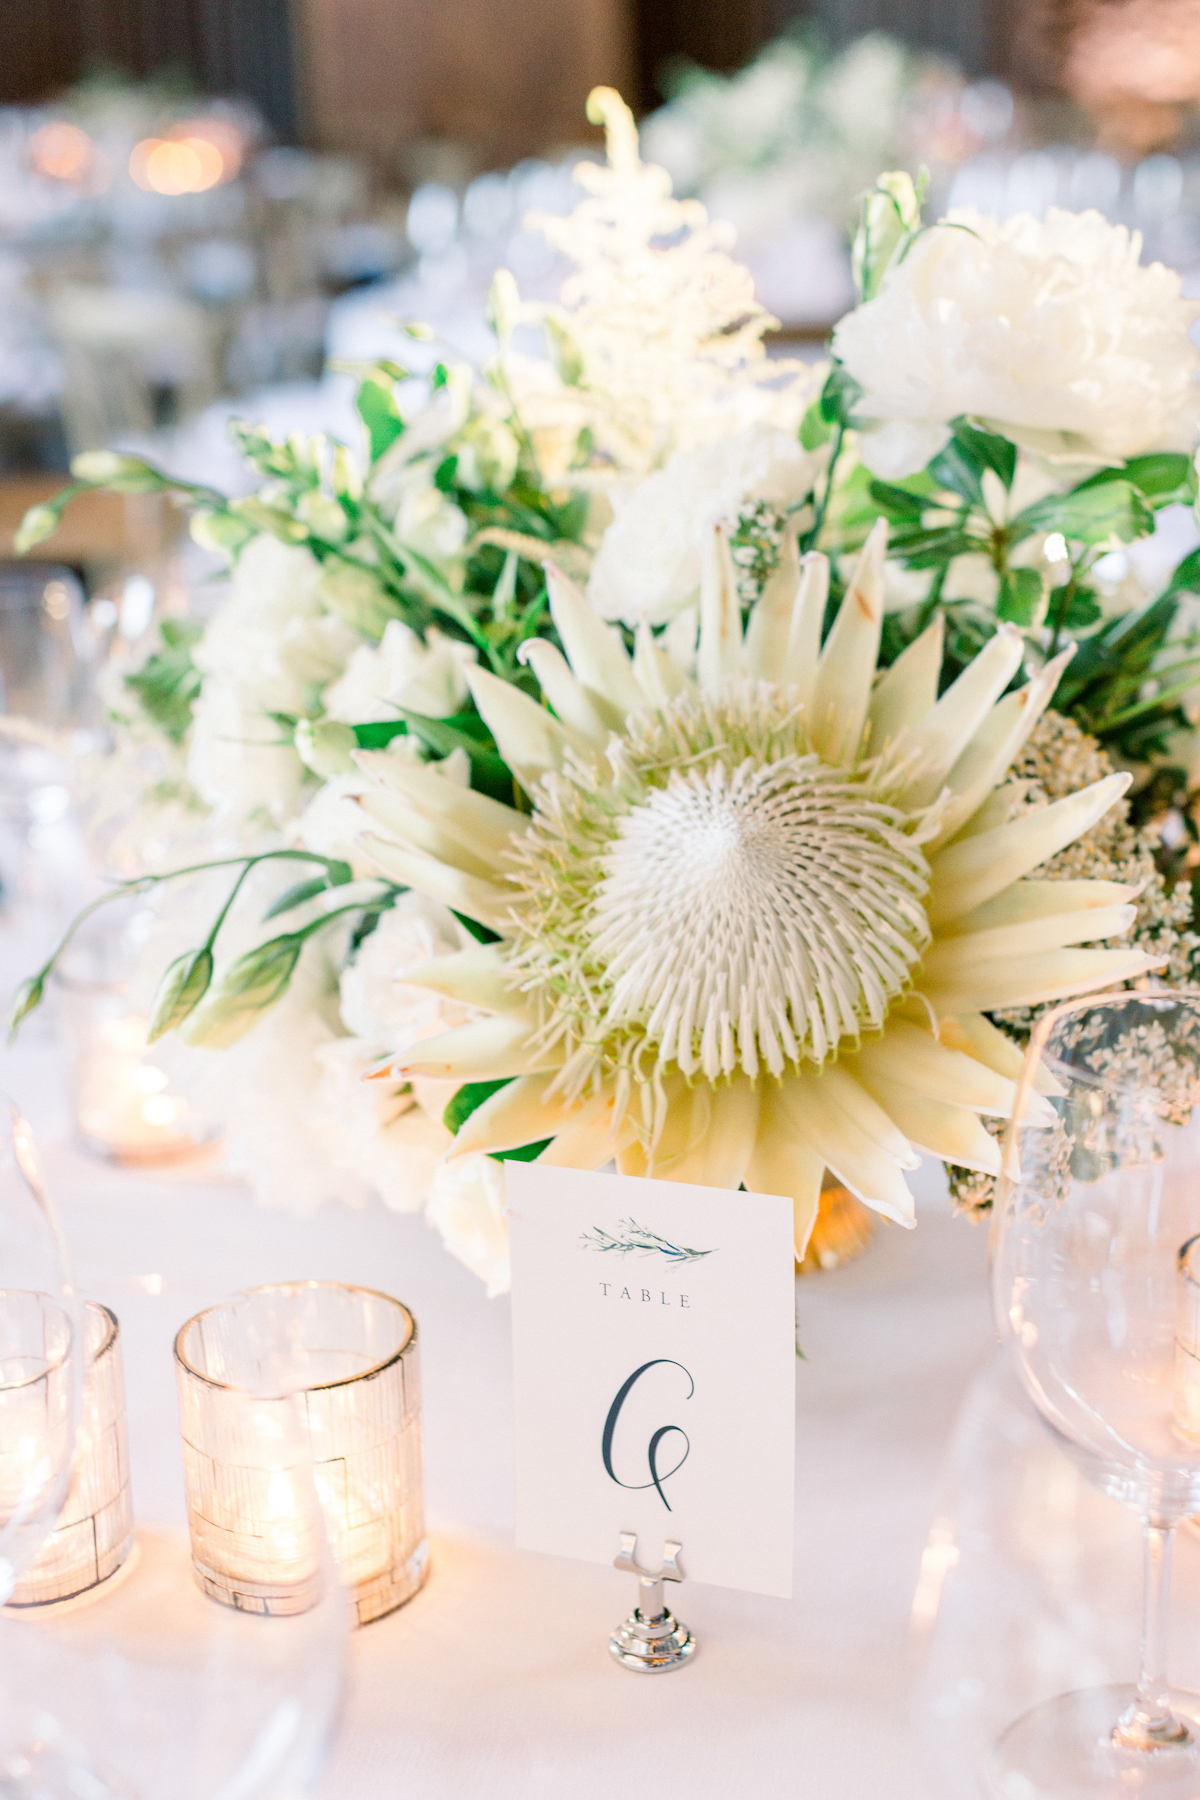 Blue Hill at Stone Barns wedding table number sign and white protea floral centerpiece